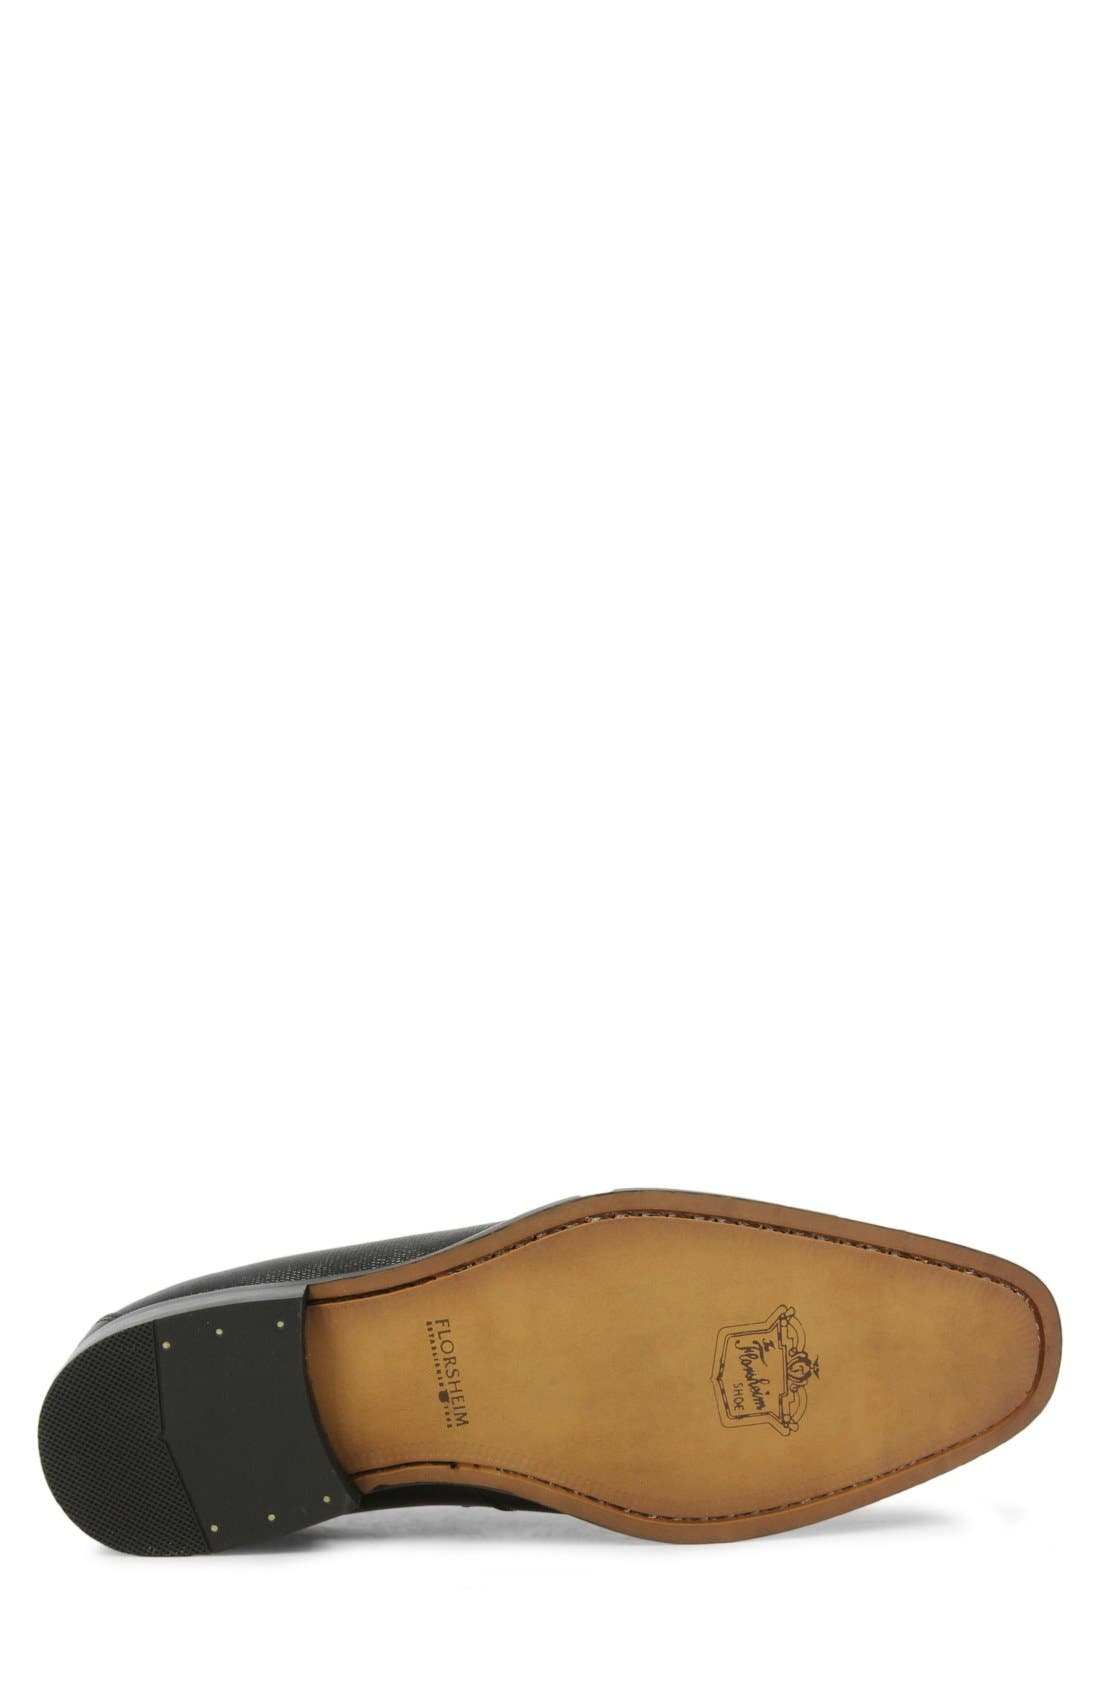 'Sabato' Penny Loafer,                             Alternate thumbnail 4, color,                             001